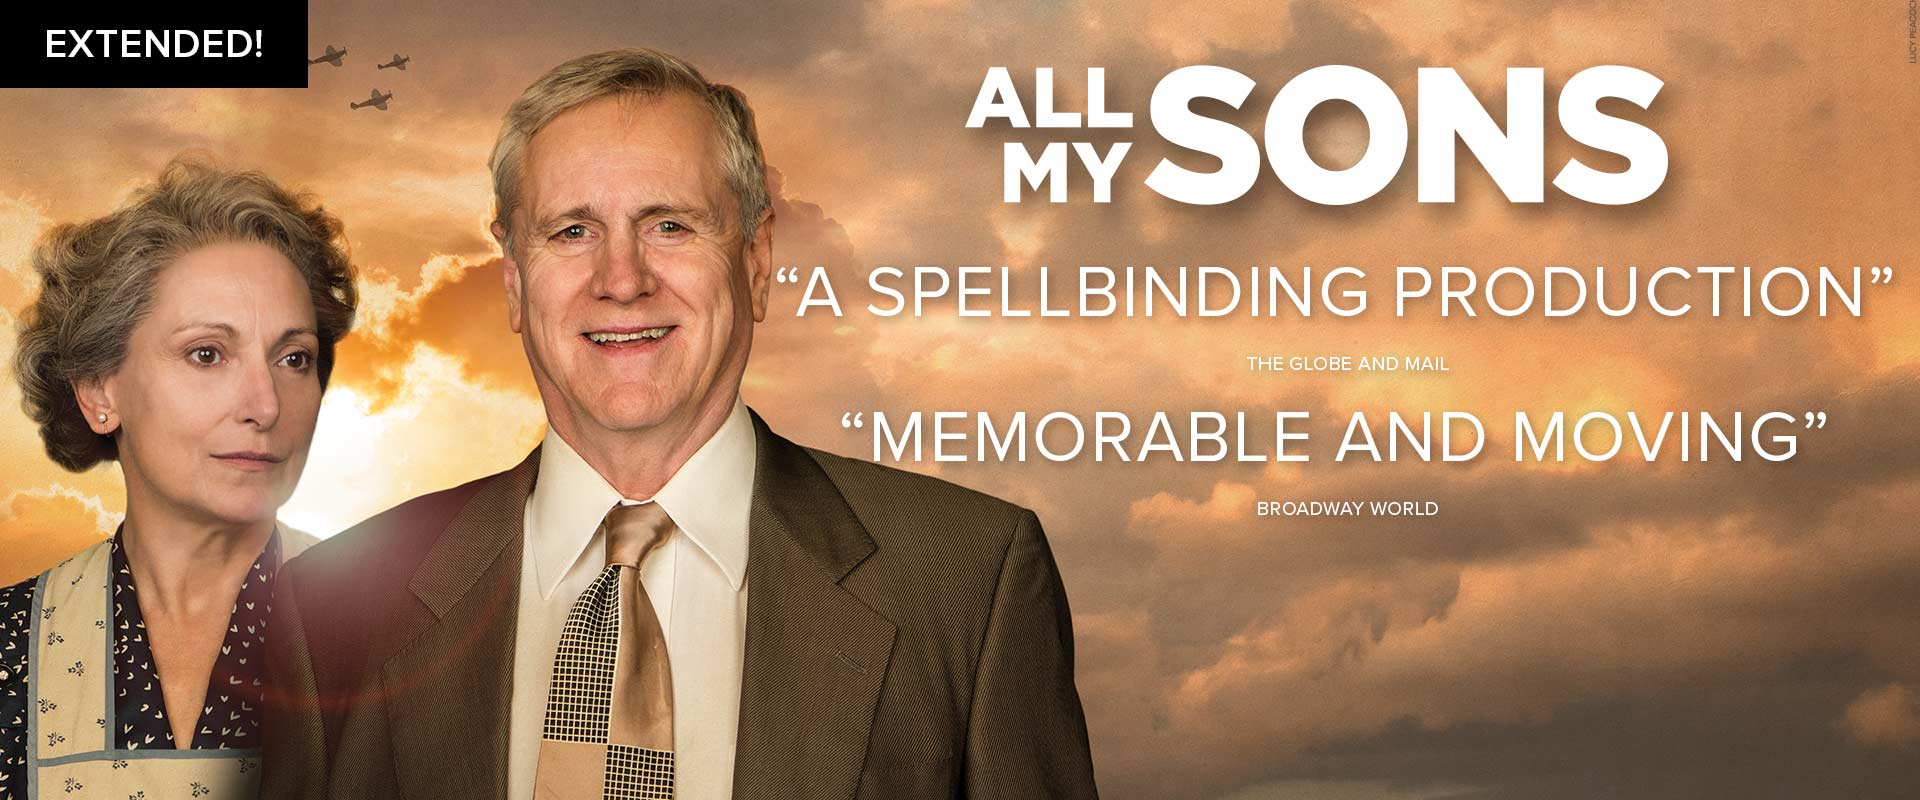 Publicity image from All My Sons